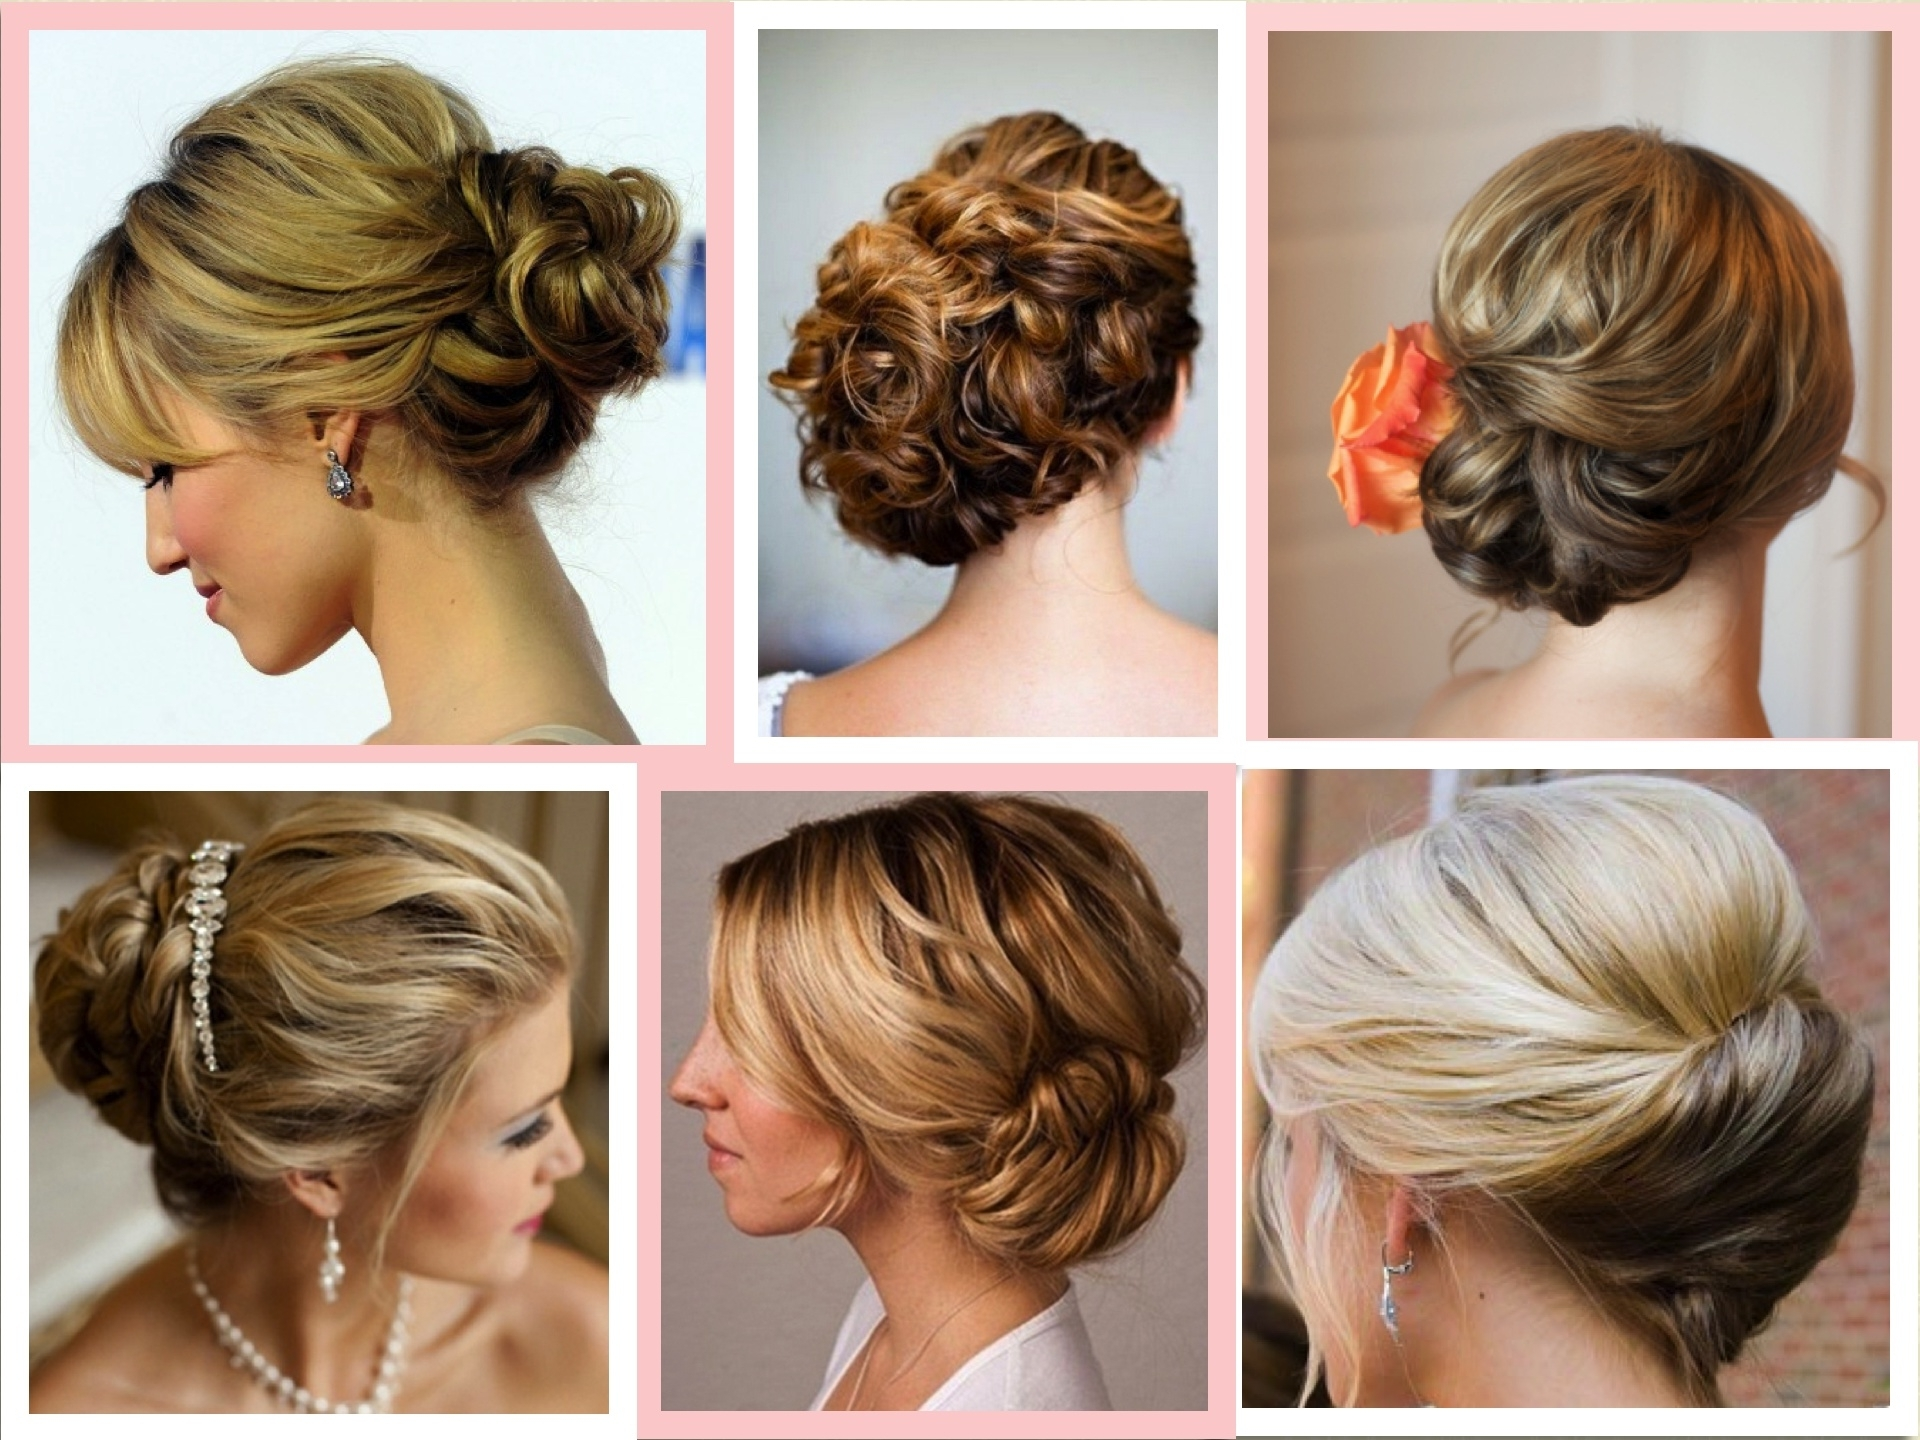 Wedding Hairstyles View Party Hairstyle Photo With Ideas For In Intended For Newest Hairstyles For Long Hair For A Wedding Party (View 14 of 15)